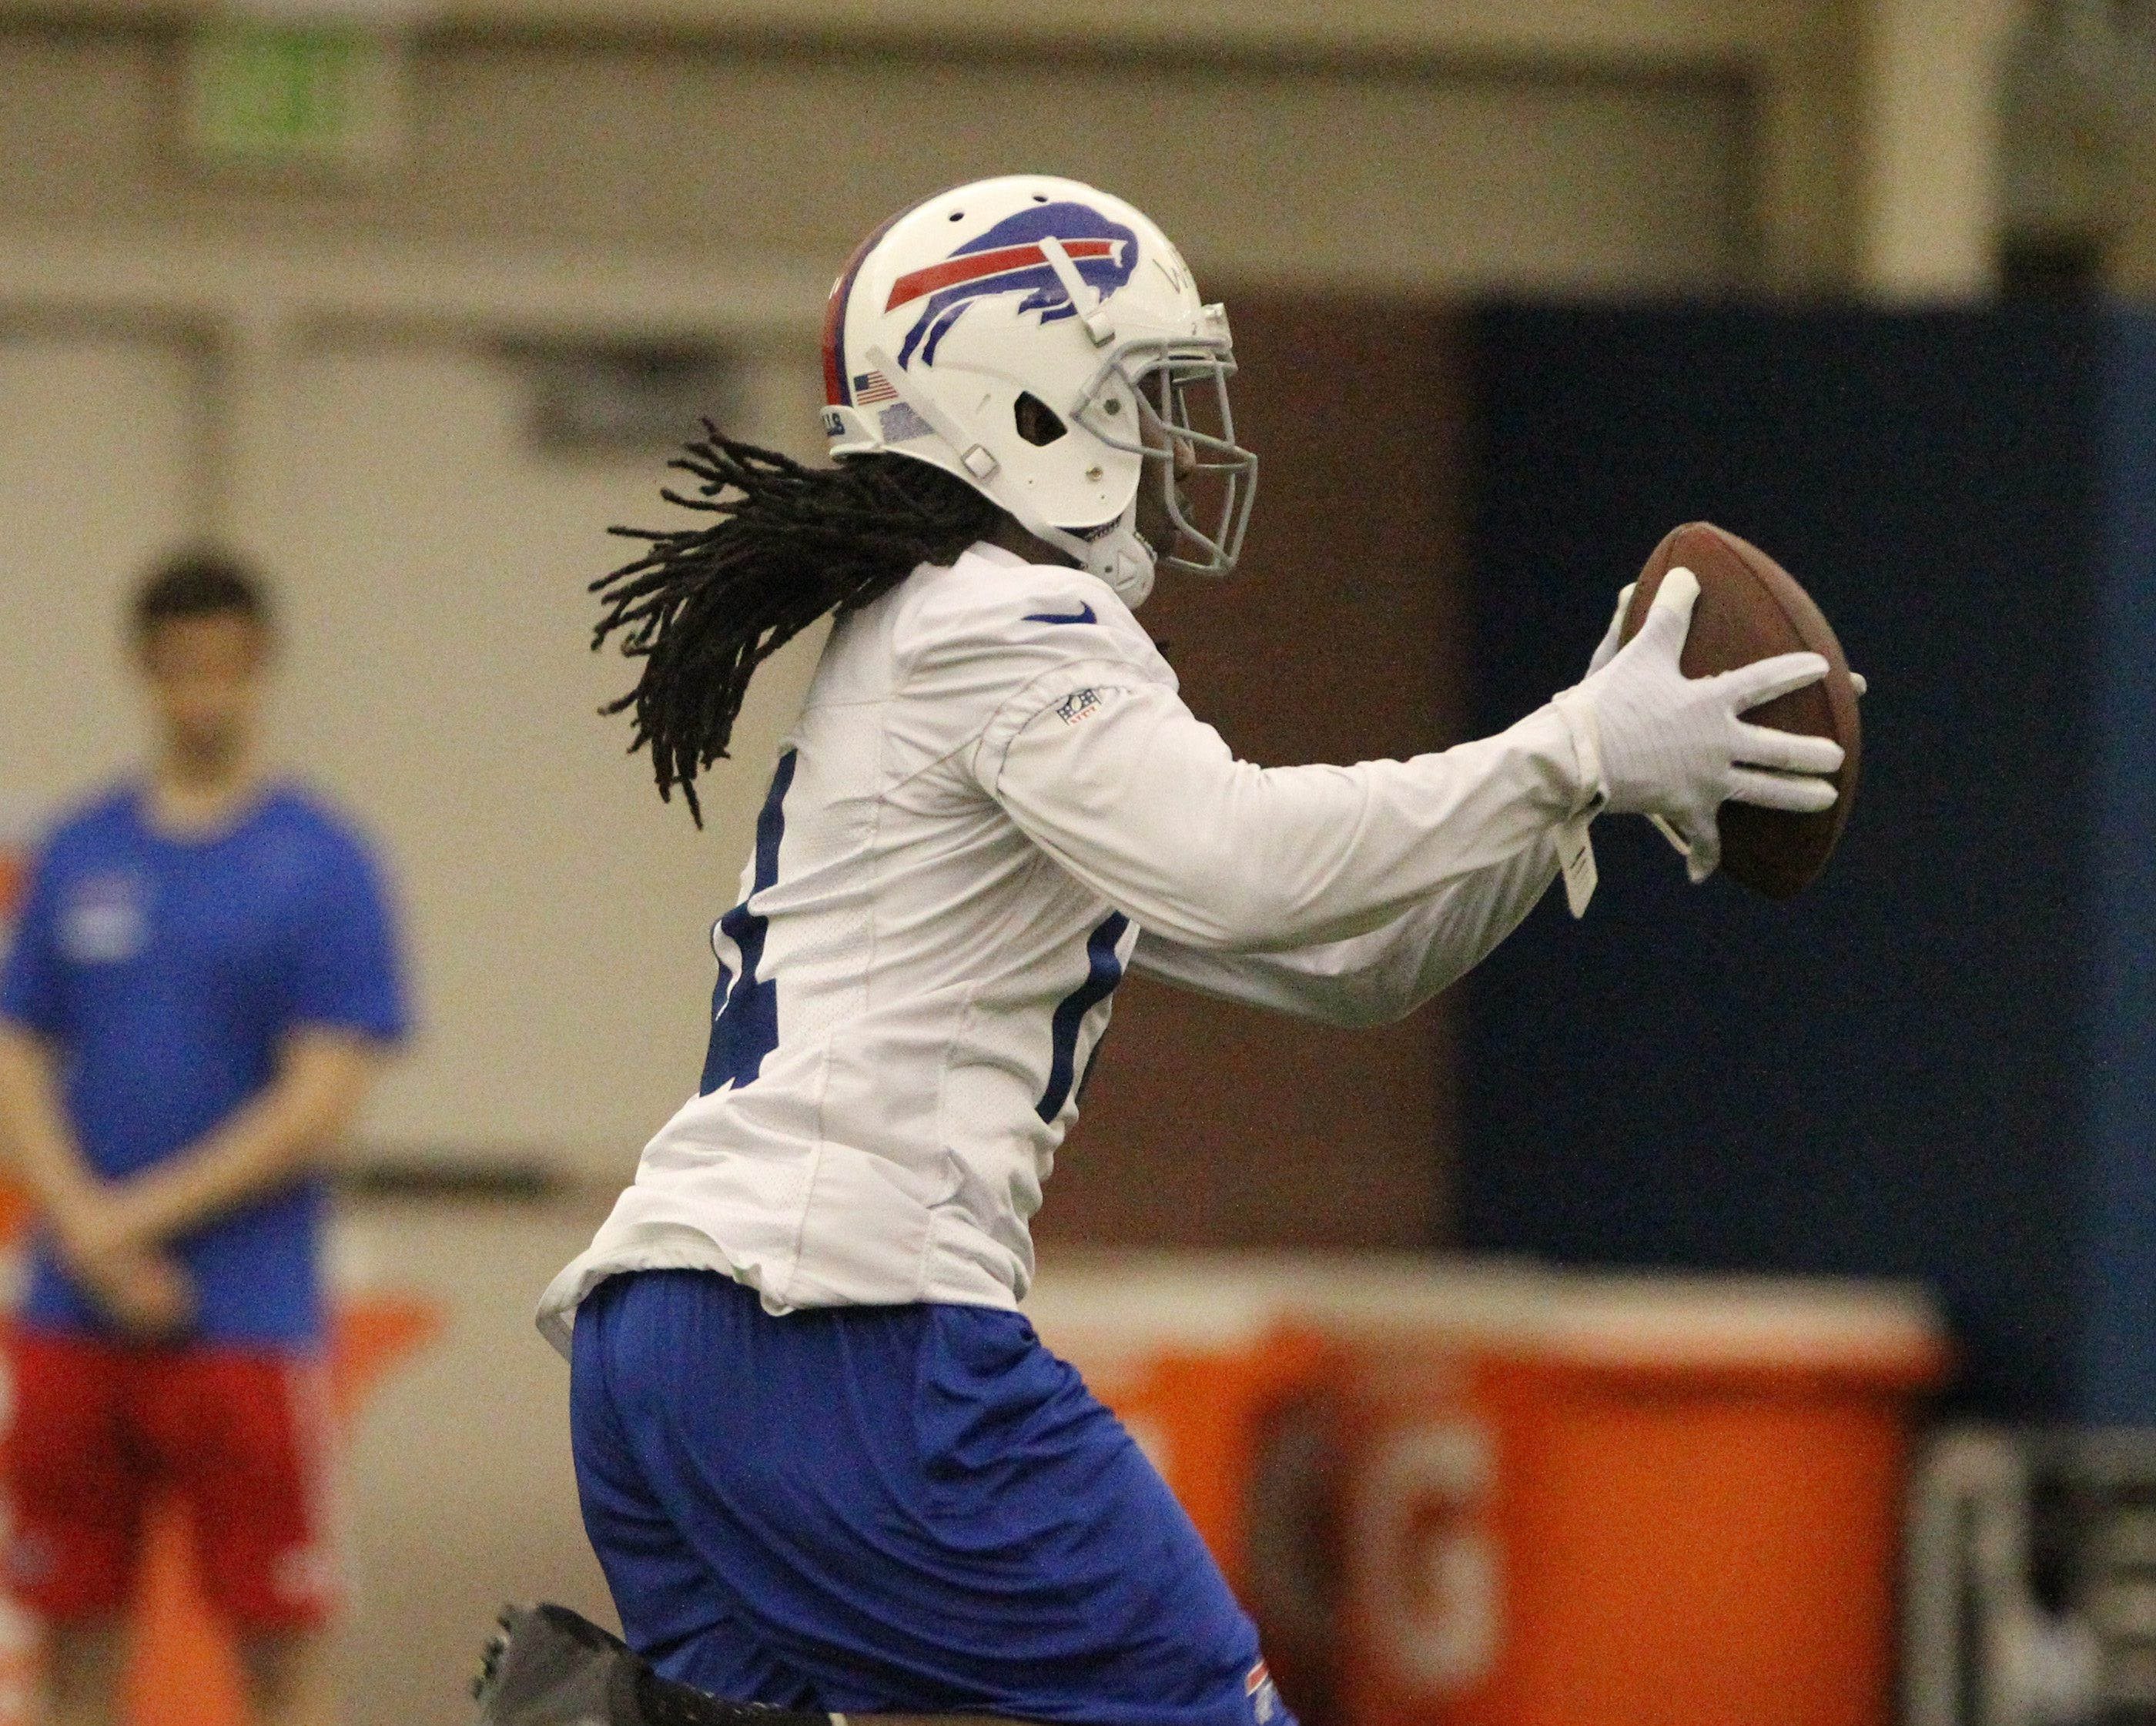 """""""It's definitely a blessing,"""" Sammy Watkins said of signing his rookie contract. """"I've got to move forward and perform now."""""""